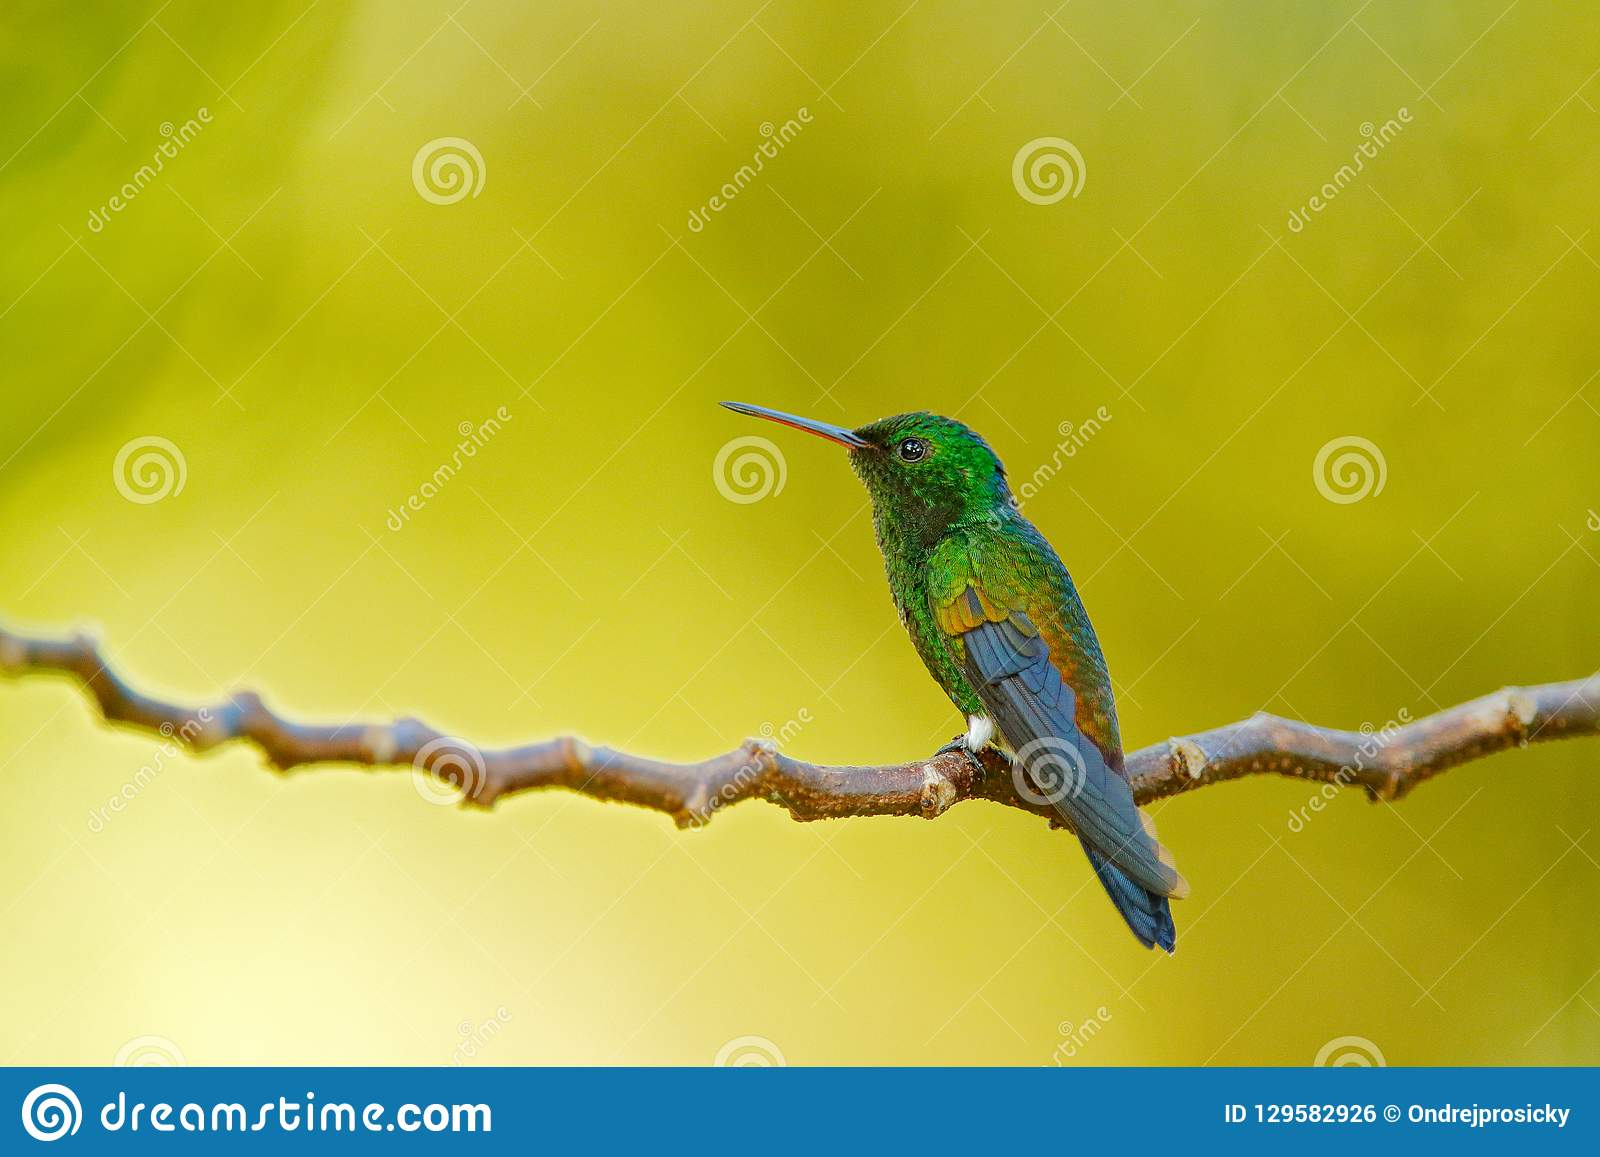 Copper-rumped hummingbird, Amazilia tobaci, sitting on the tree branch with green yellow backgrond, Trinidad and Tobaco. Hummingbi